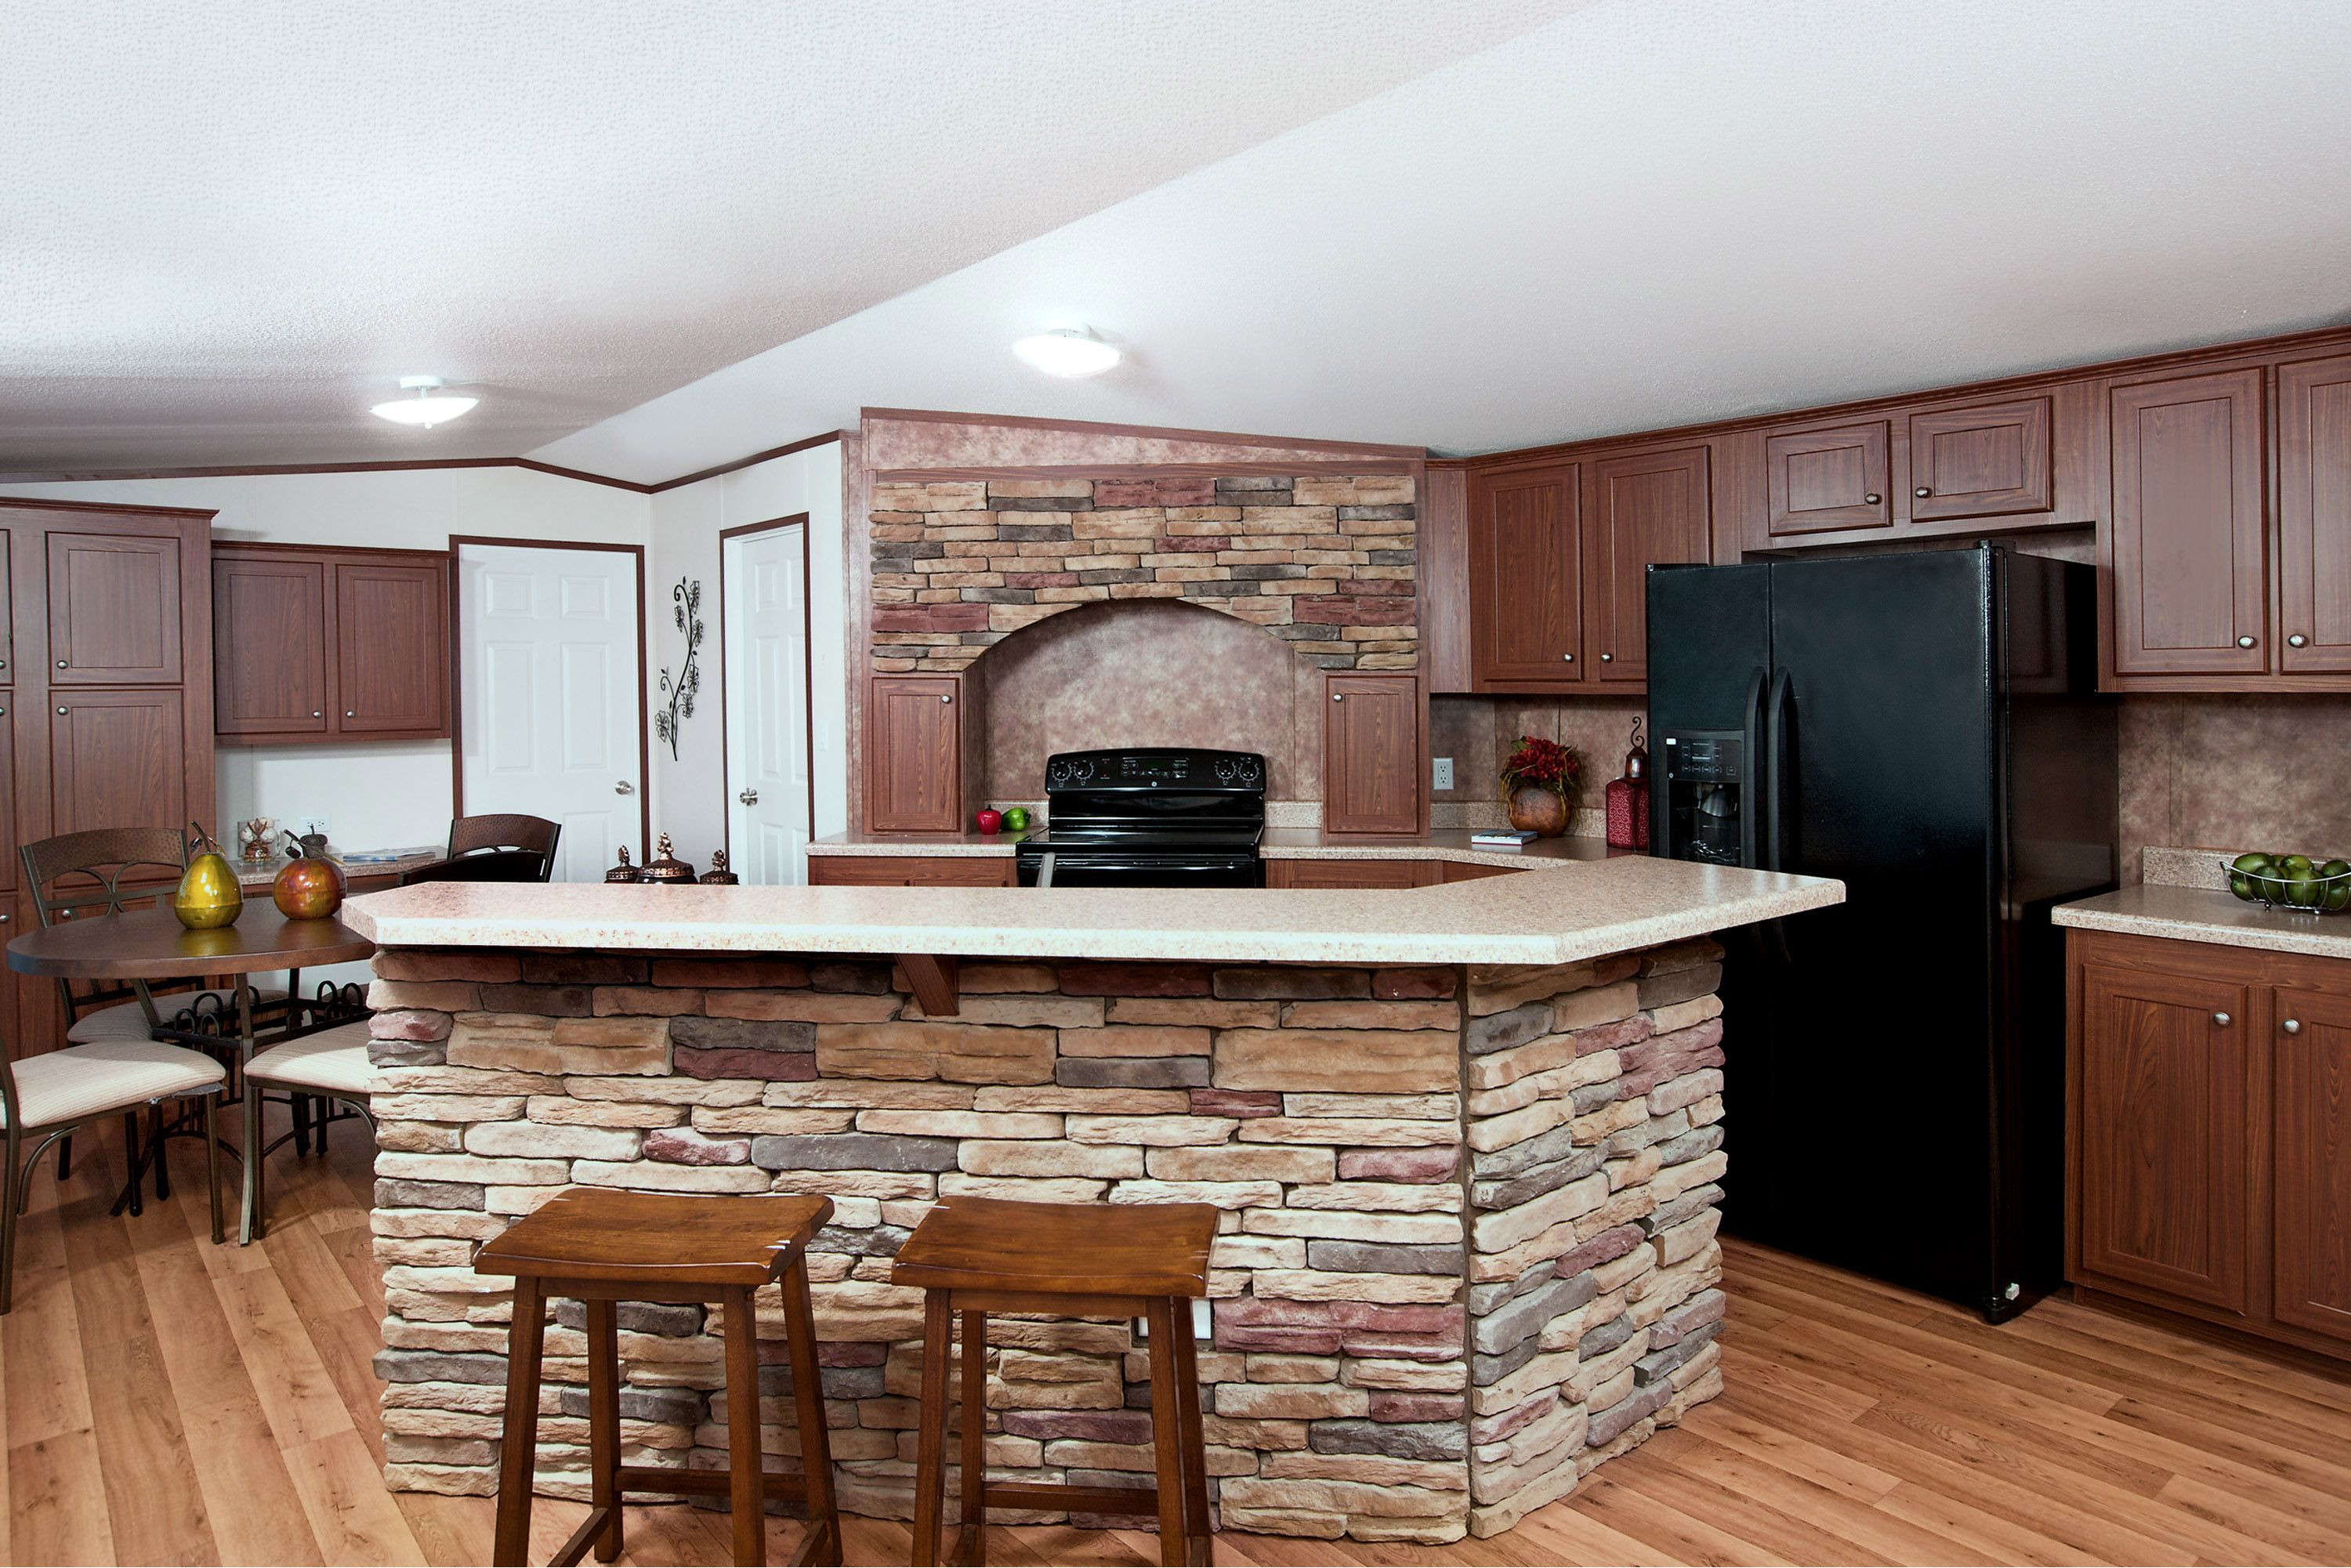 Kitchen Of The Cosmopolitan A 3 Bed 2 Bath 1280 Sq Ft